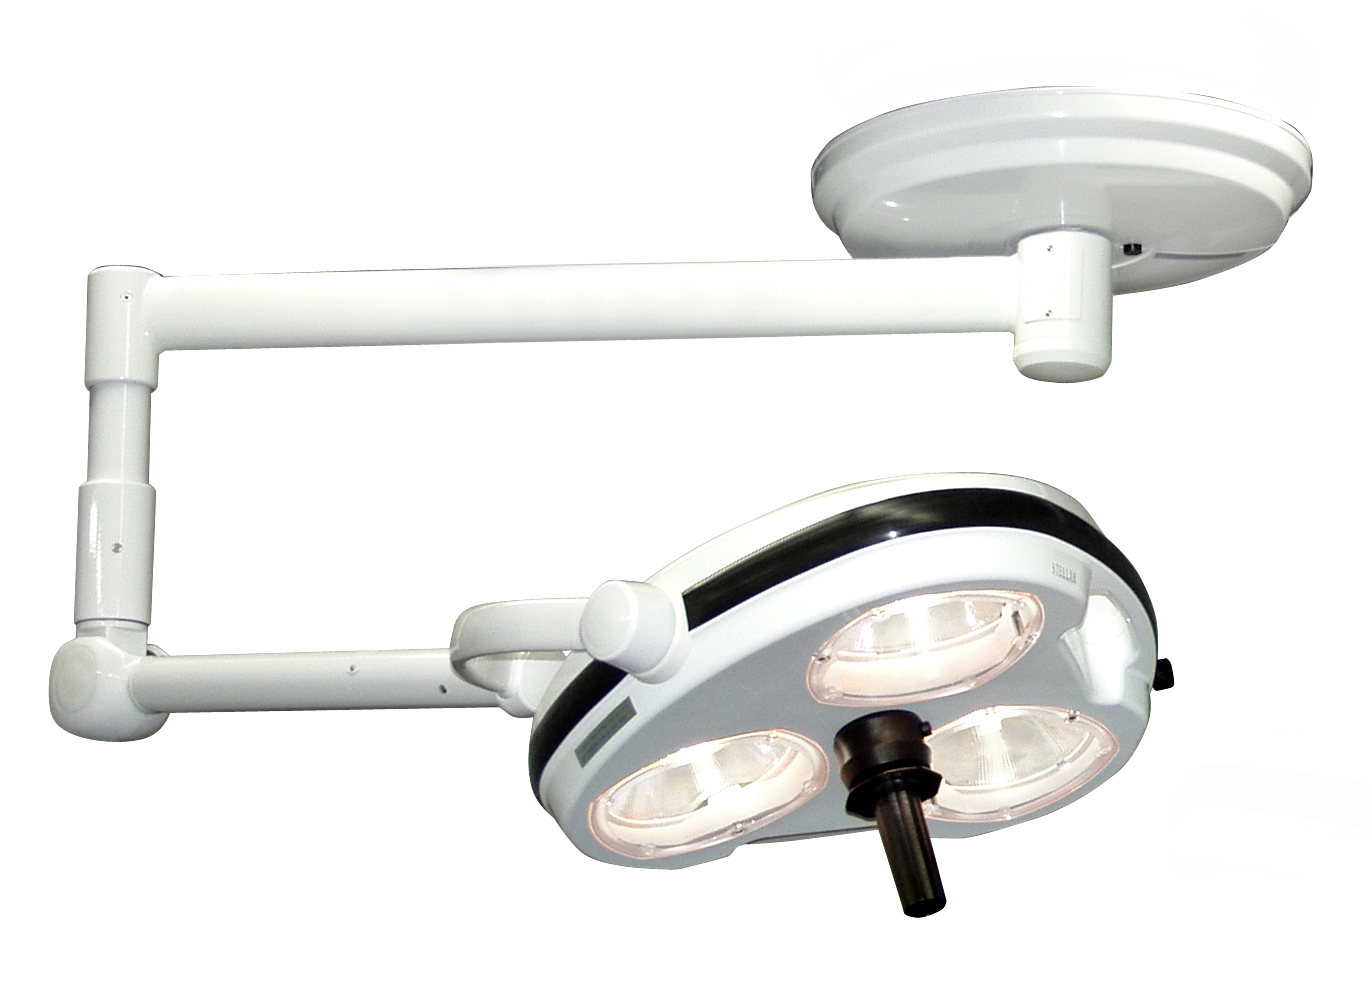 Ceiling mounted Optimaxx Surgeon Headlight